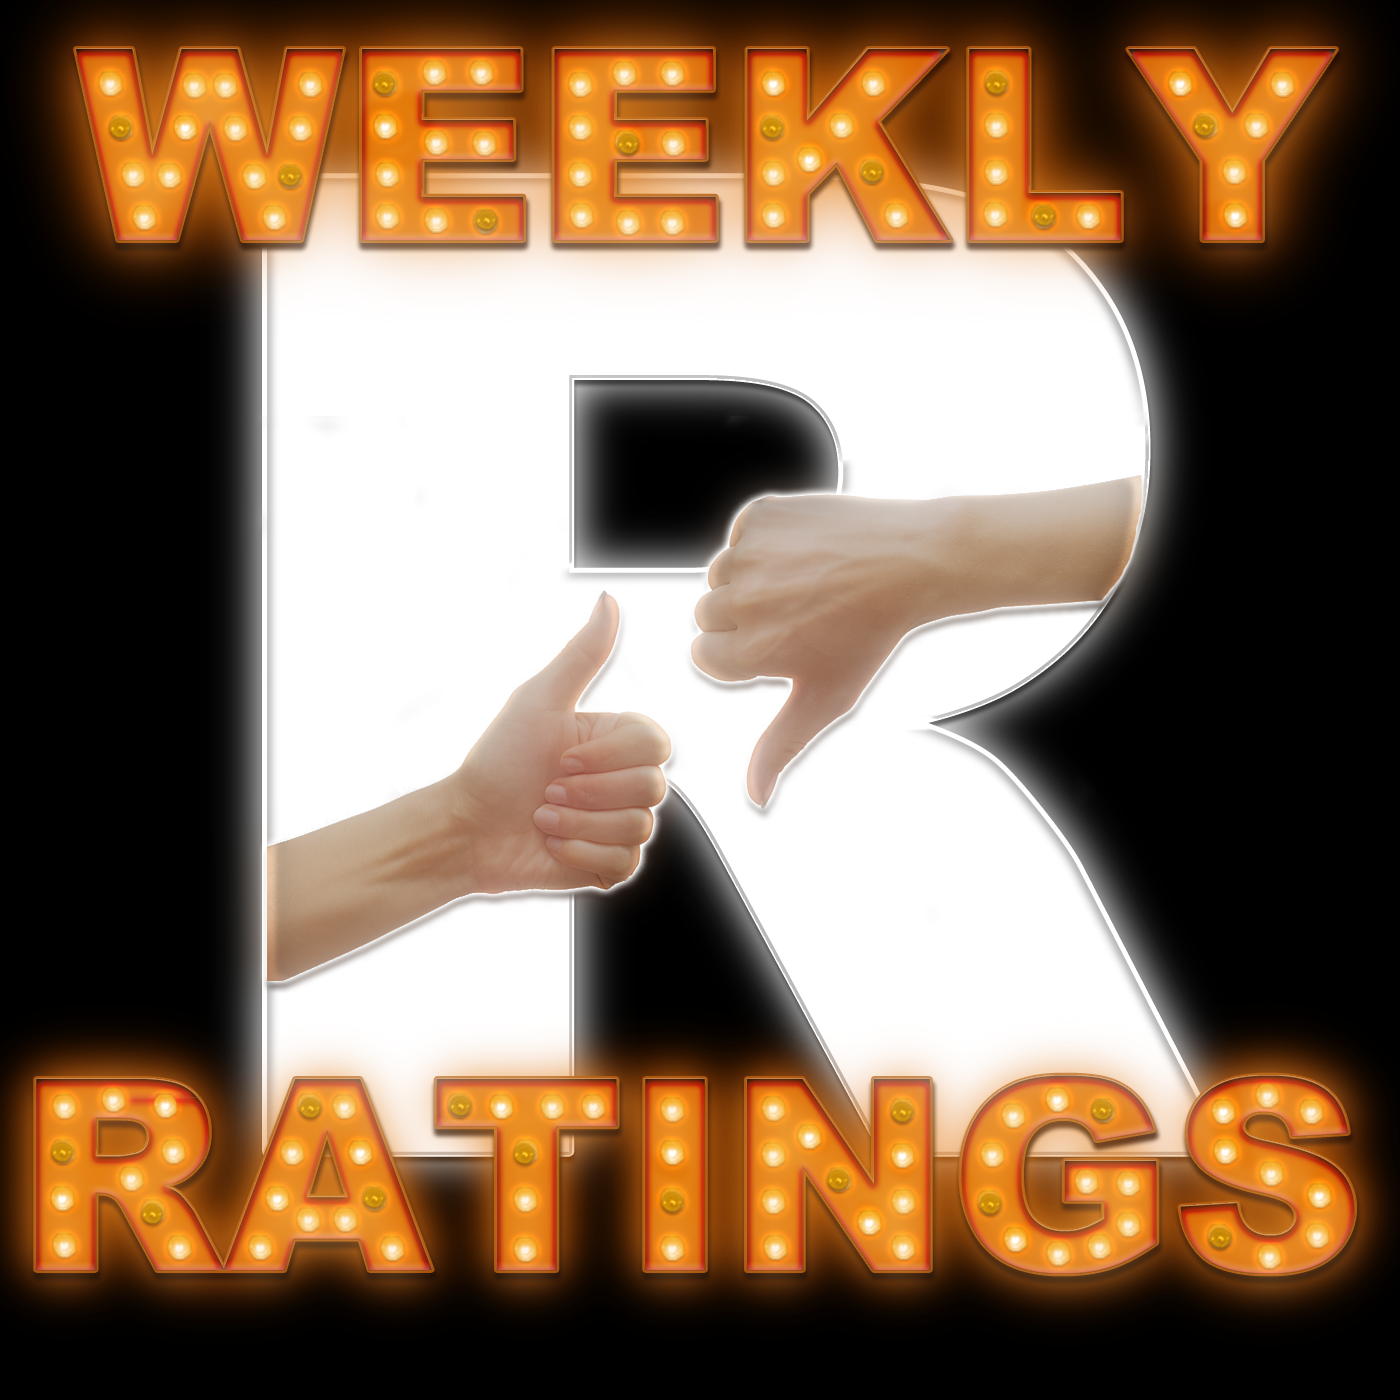 Weekly R Ratings - Letter R Productions